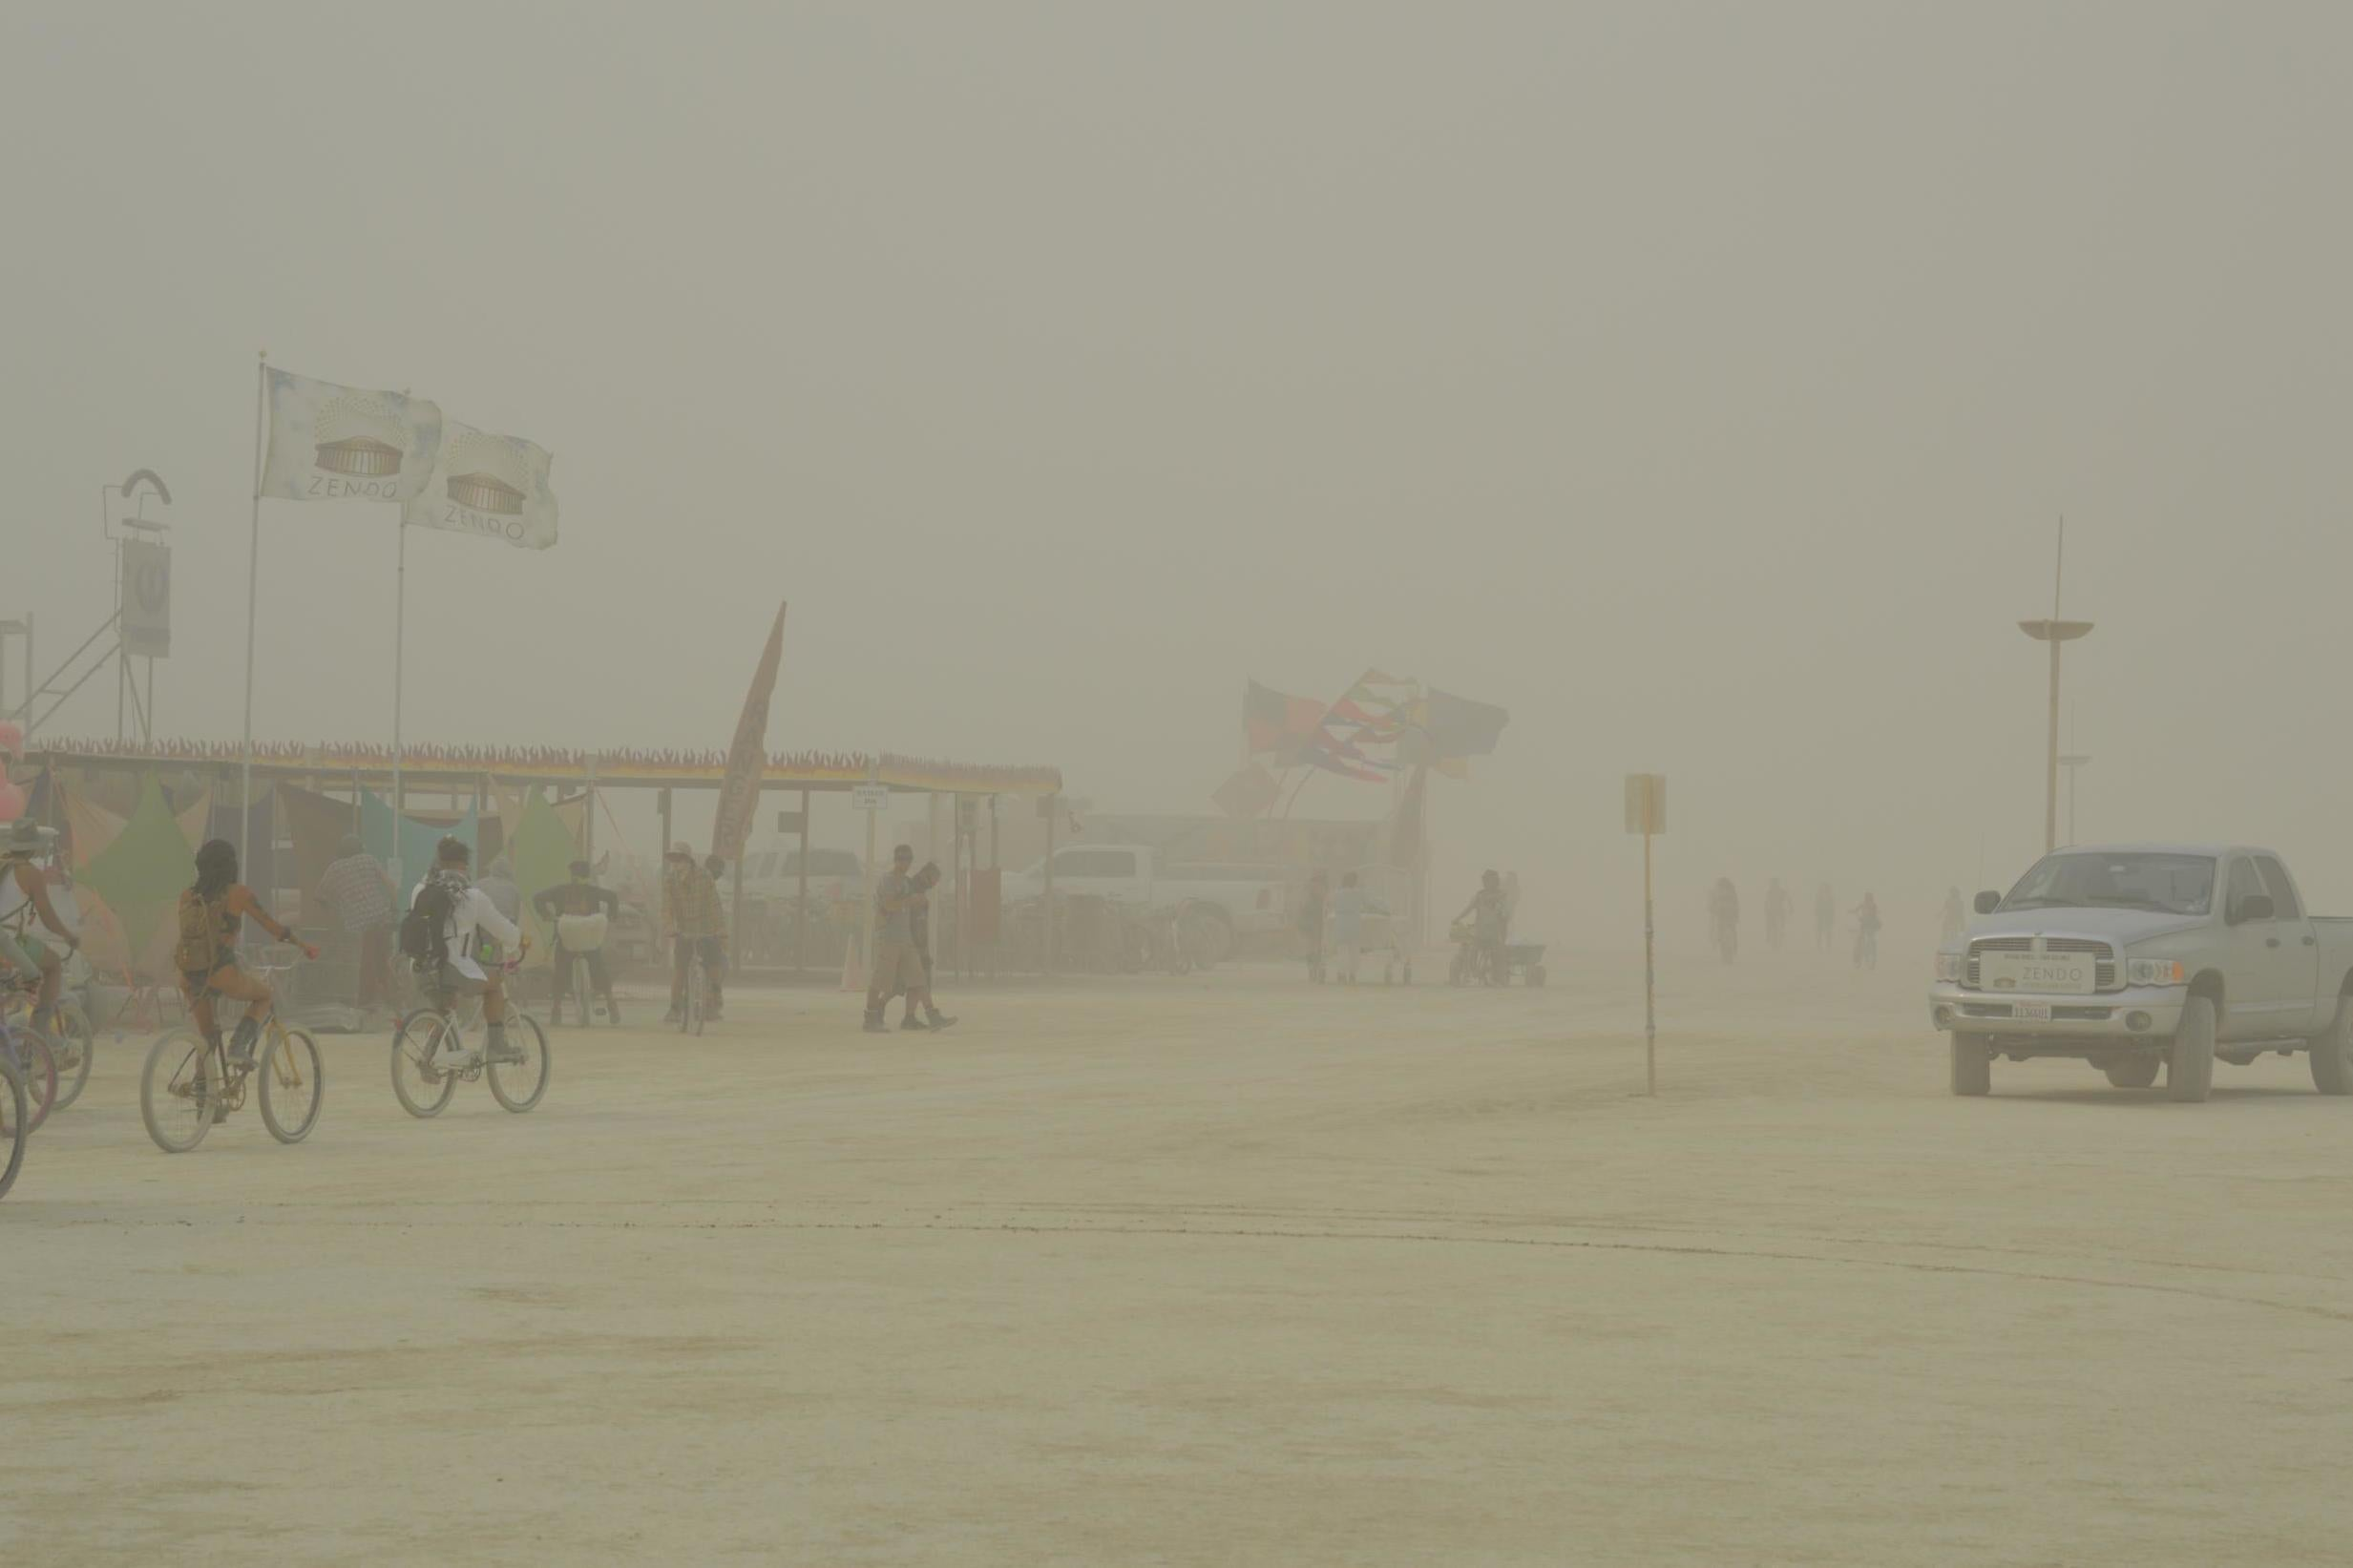 Whiteouts and dust storms cause Burning Man 2018 to stop entry for three hours